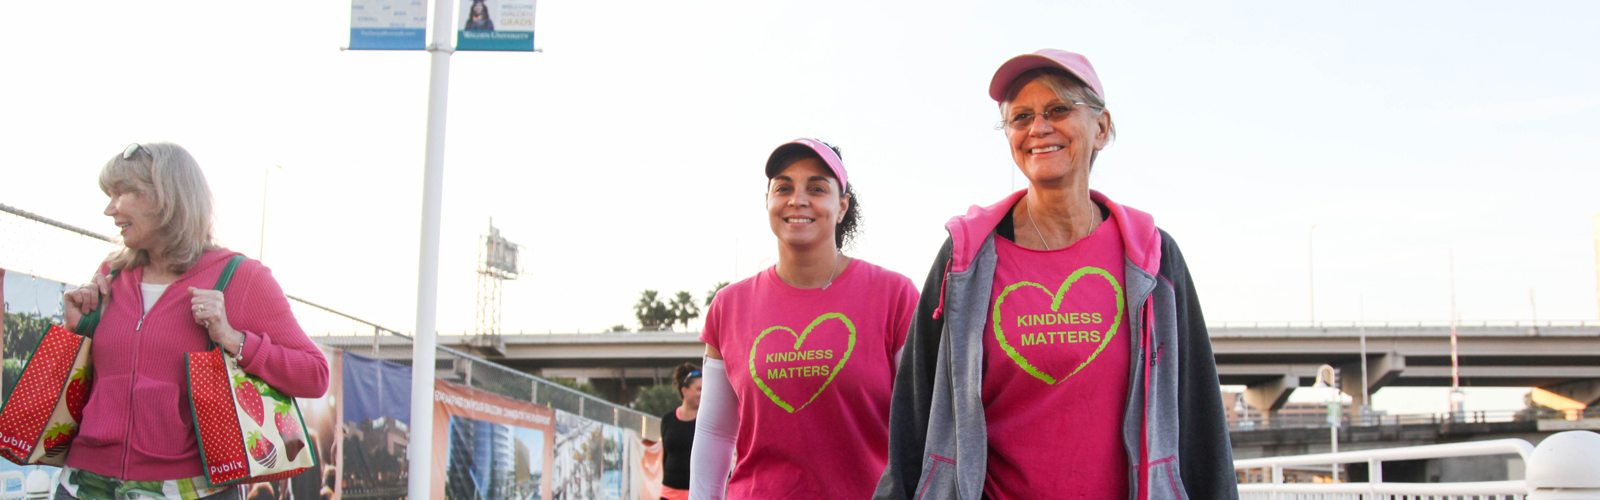 (L-R) Gia Metcalf, Maribell Figueroa, a breast cancer survivor, and Sylvia Campbell, a breast cancer surgeon, help feed Tampa's homeless.  <span class='image-credits'>Amber Sigman</span>